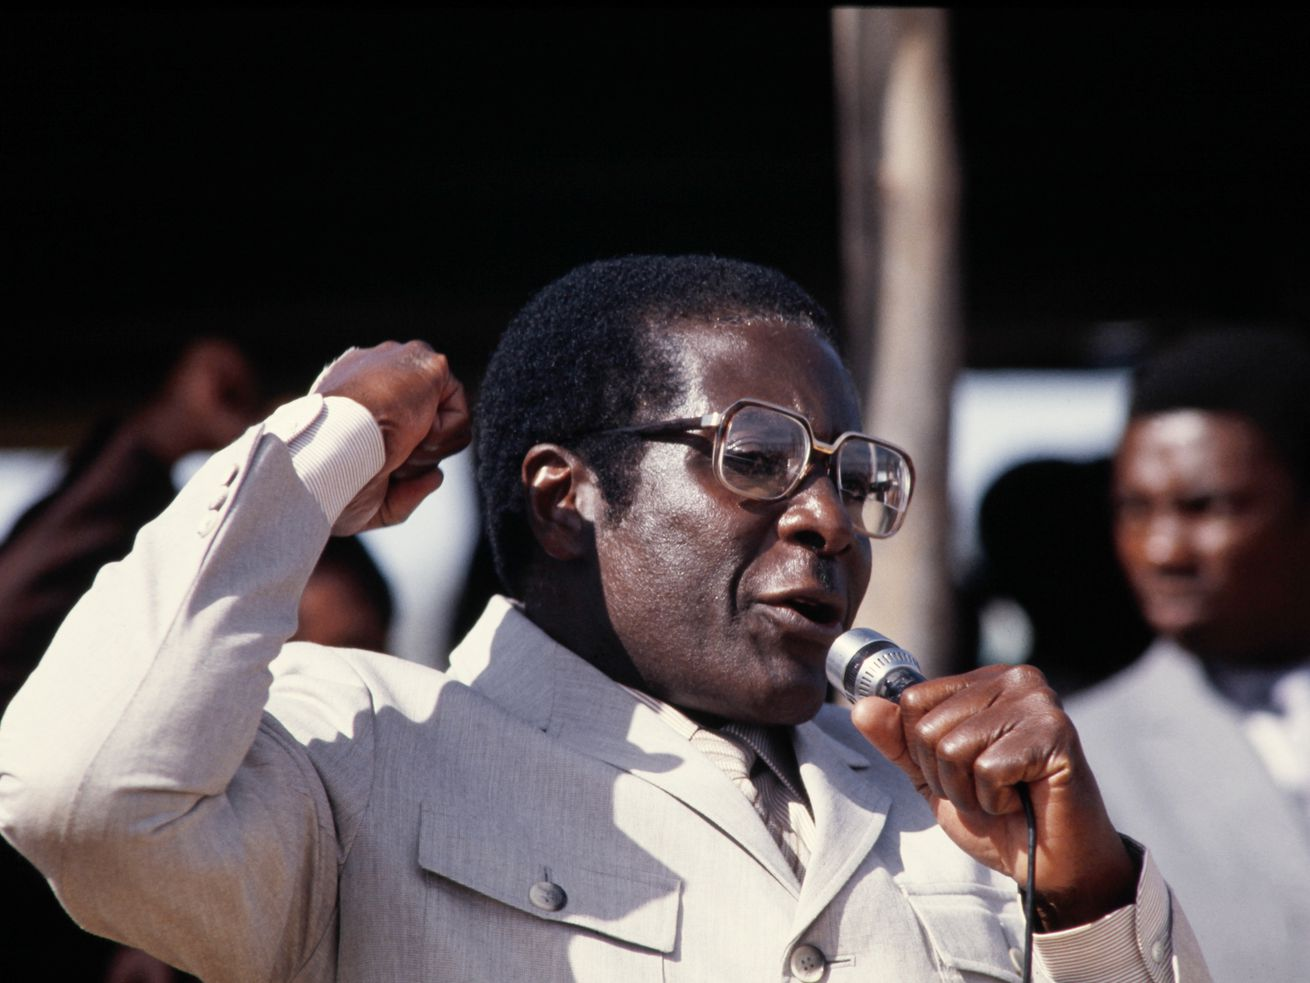 Zimbabwean Prime Minister Robert Mugabe holding a microphone in one hand and making a fist with the other while speaking to a crowd in 1984.